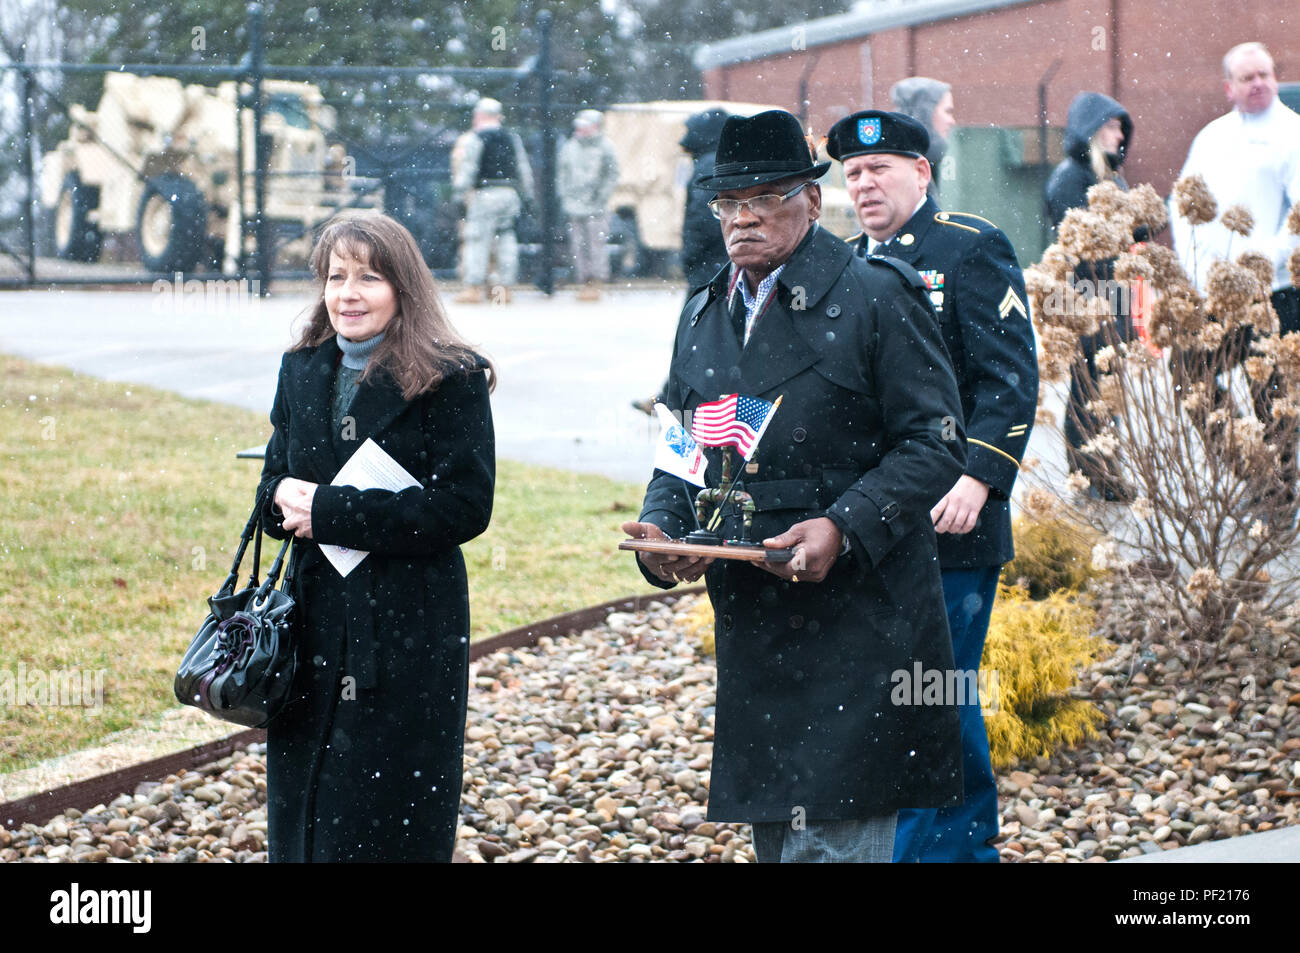 Family members of fallen Soldiers from the 14th Quartermaster Detachment, who died during a scud missile attack in Operation Desert Storm, walk toward the monument dedicated to the 14th QM Detachment in Greensburg, Pa., Feb. 25, 2016. (U.S. Army photo by Staff Sgt. Dalton Smith/Released) - Stock Image